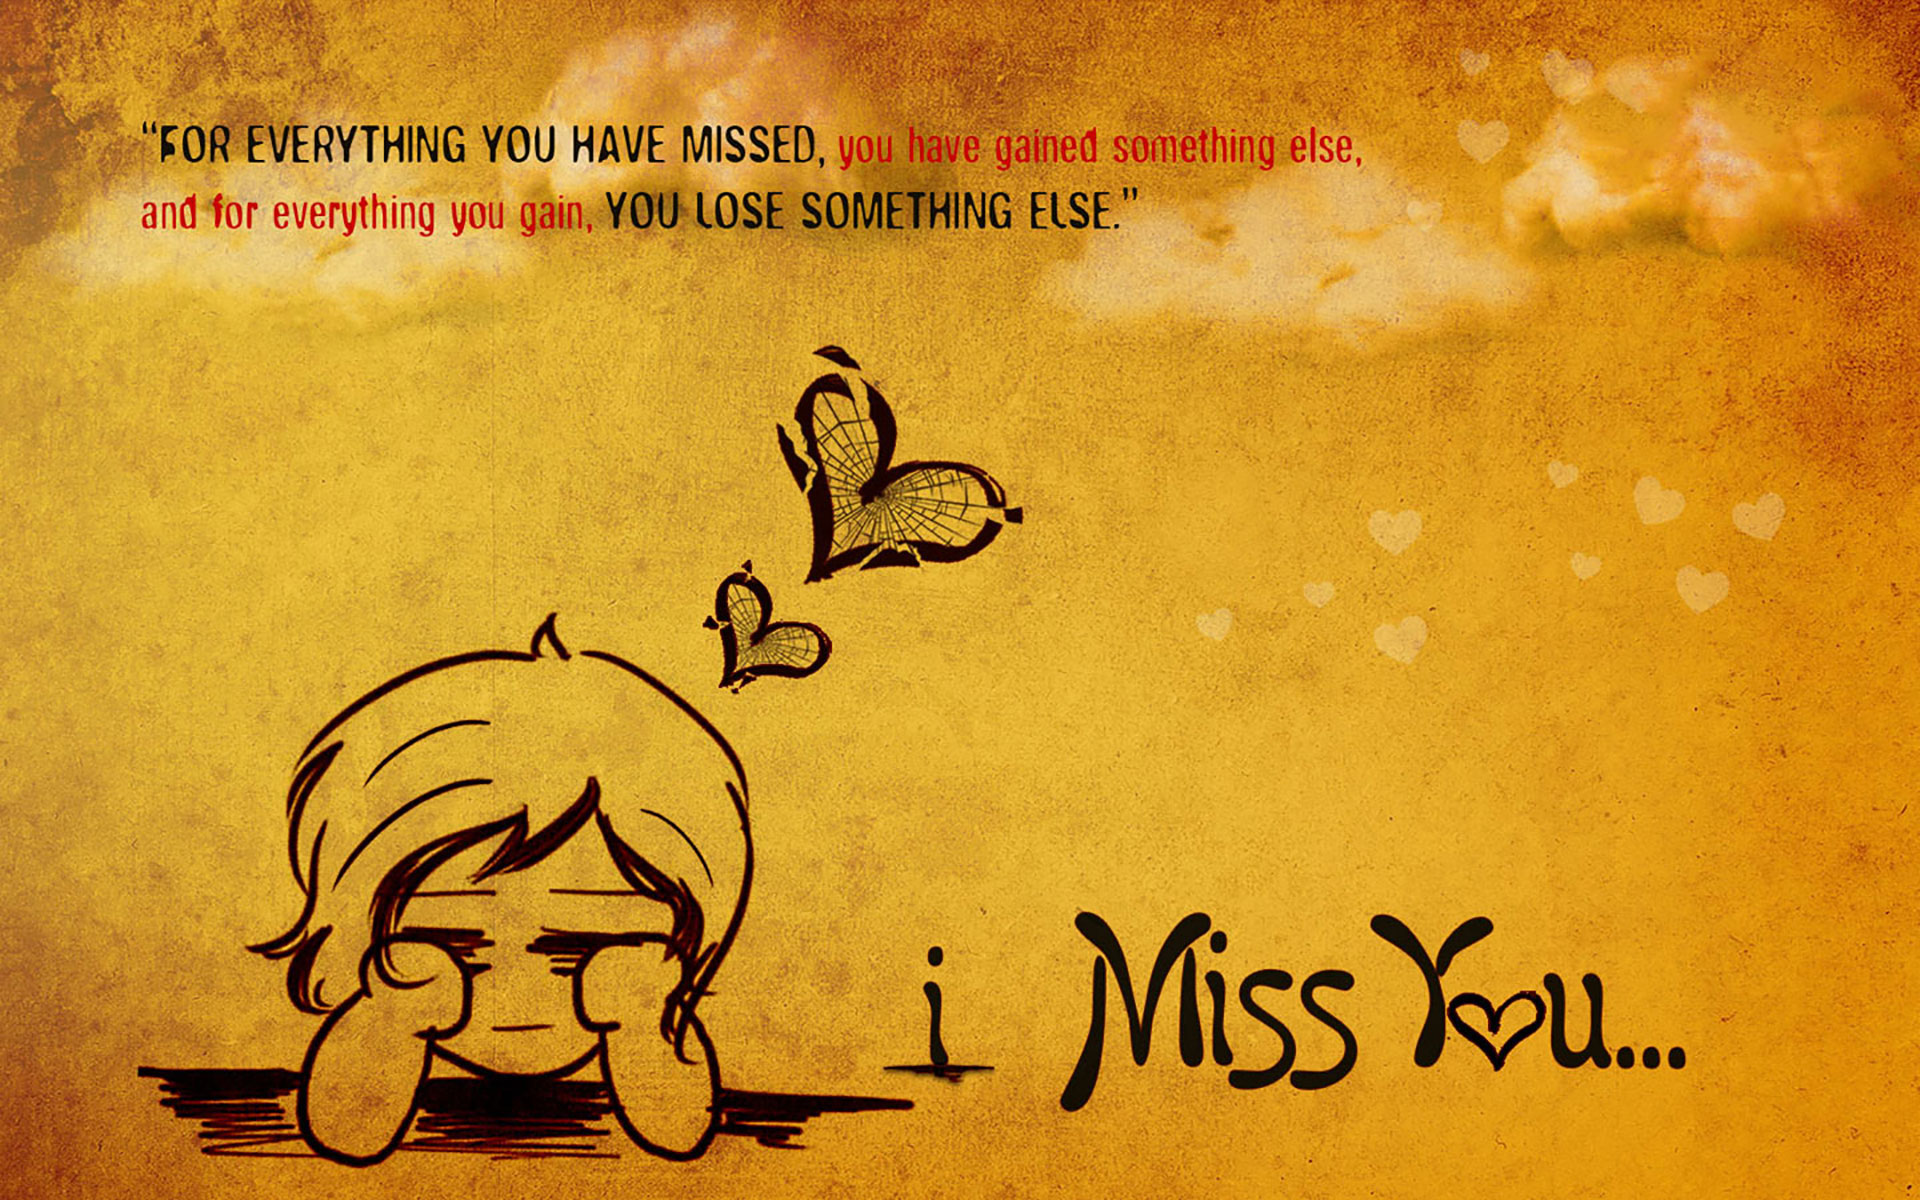 Miss You Images Wallpaper Wallpapersafari